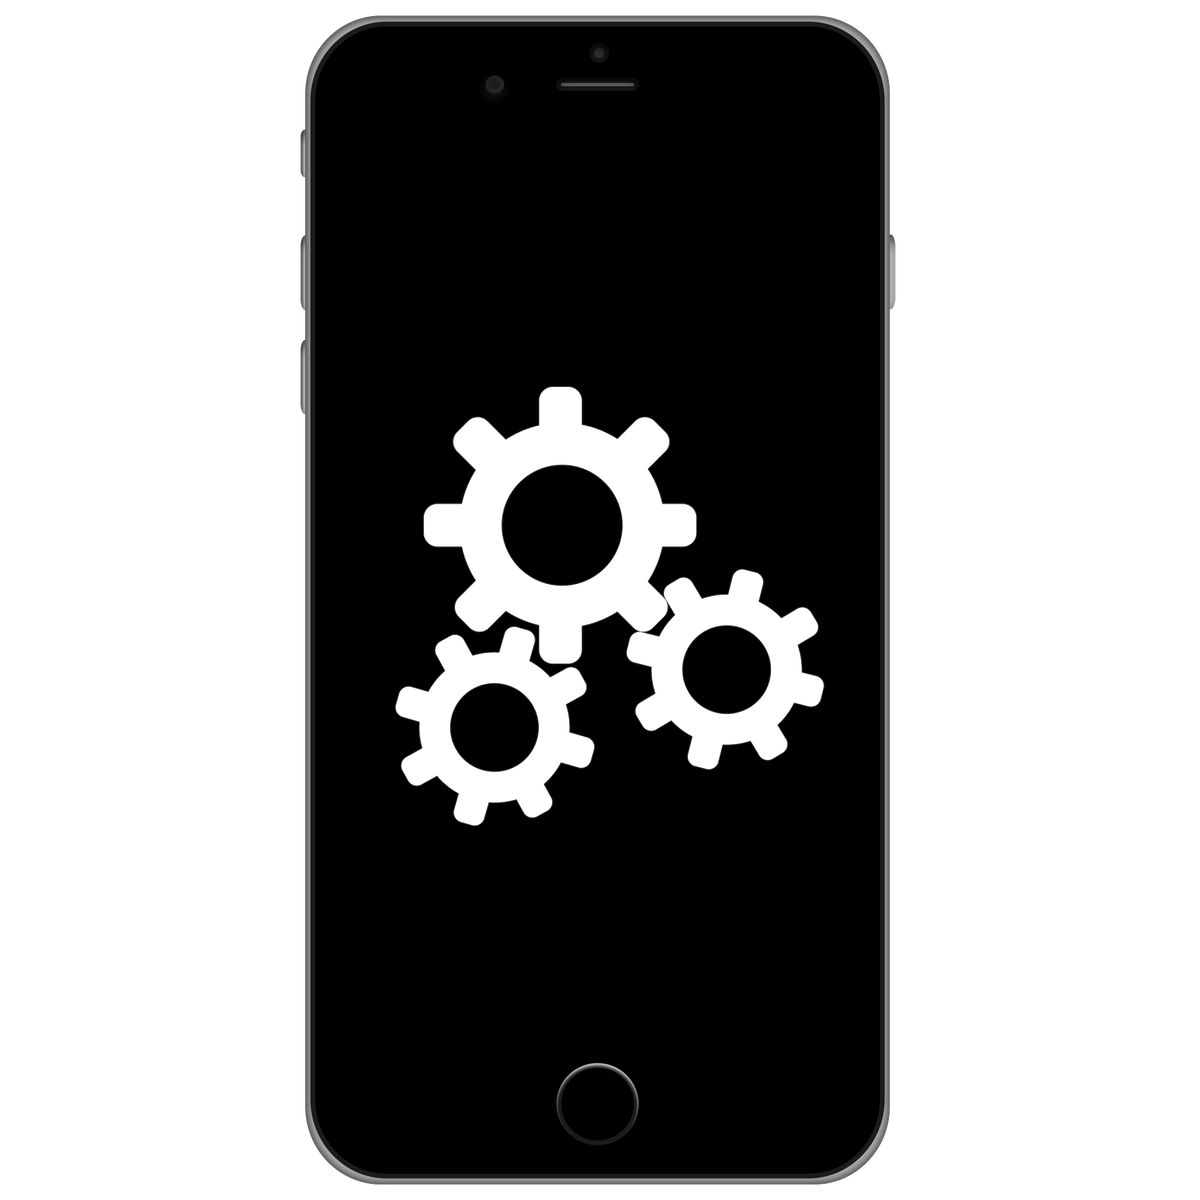 Repair iPhone 8 Plus Software - TechPros